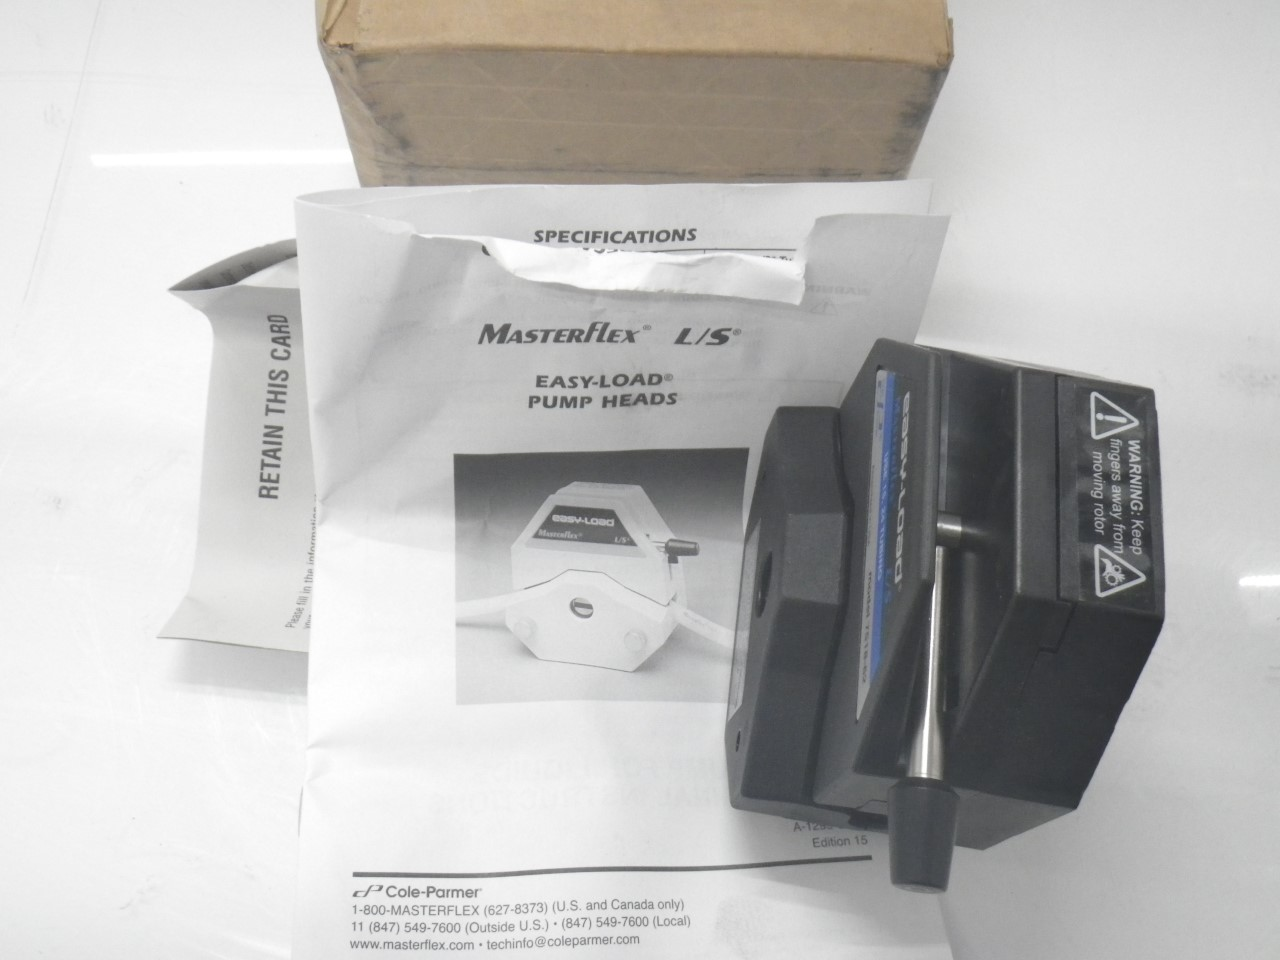 IMGP11207518-62 Cole Parmer Easy-load Masterflex Ls 7518-62 Pump Head (New with Box) (11)